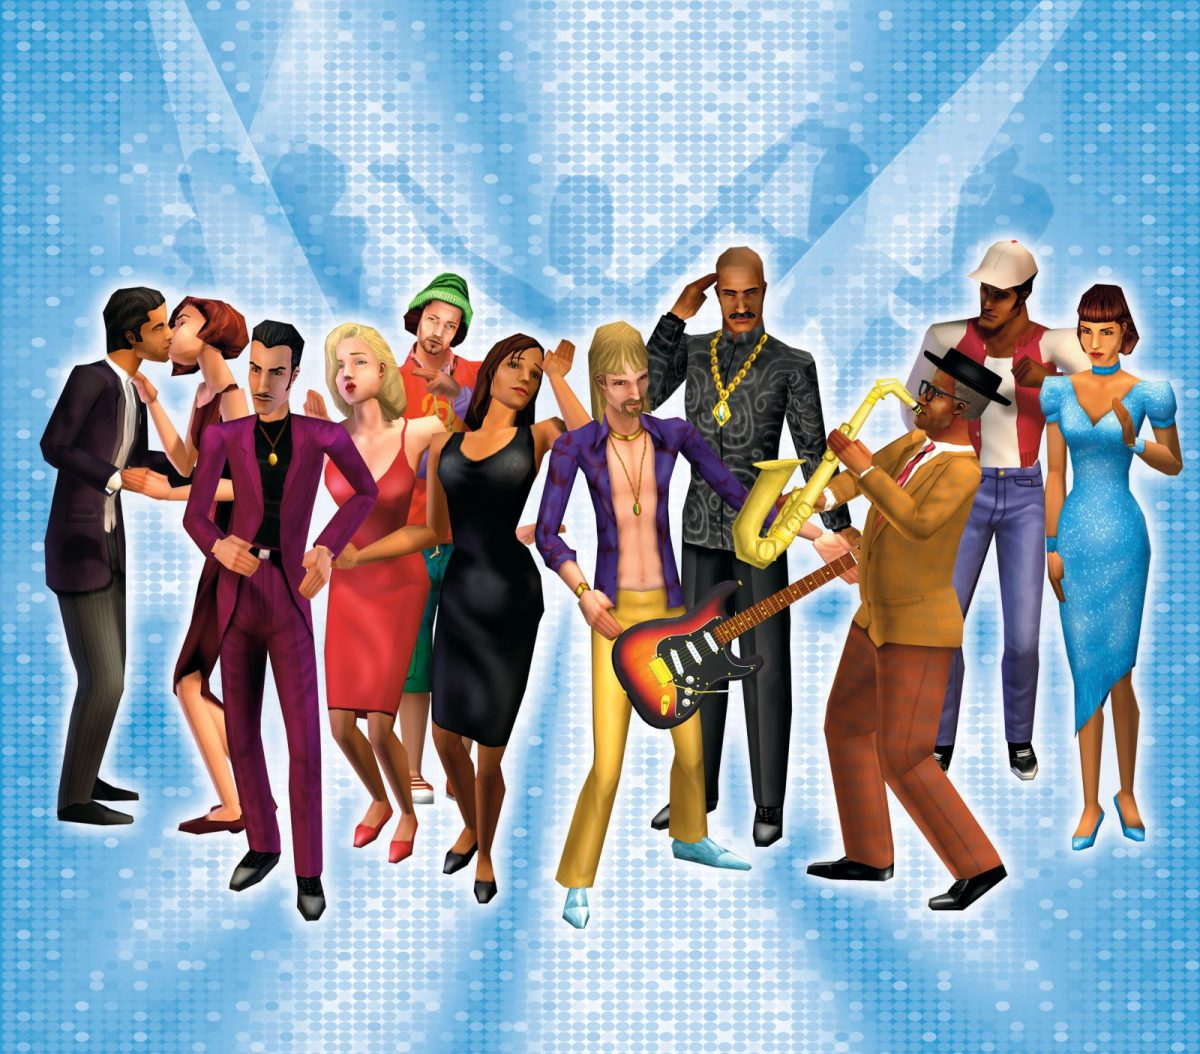 Buzzfeed: 20 Things You Learned If You Wasted Your Childhood Playing The Sims